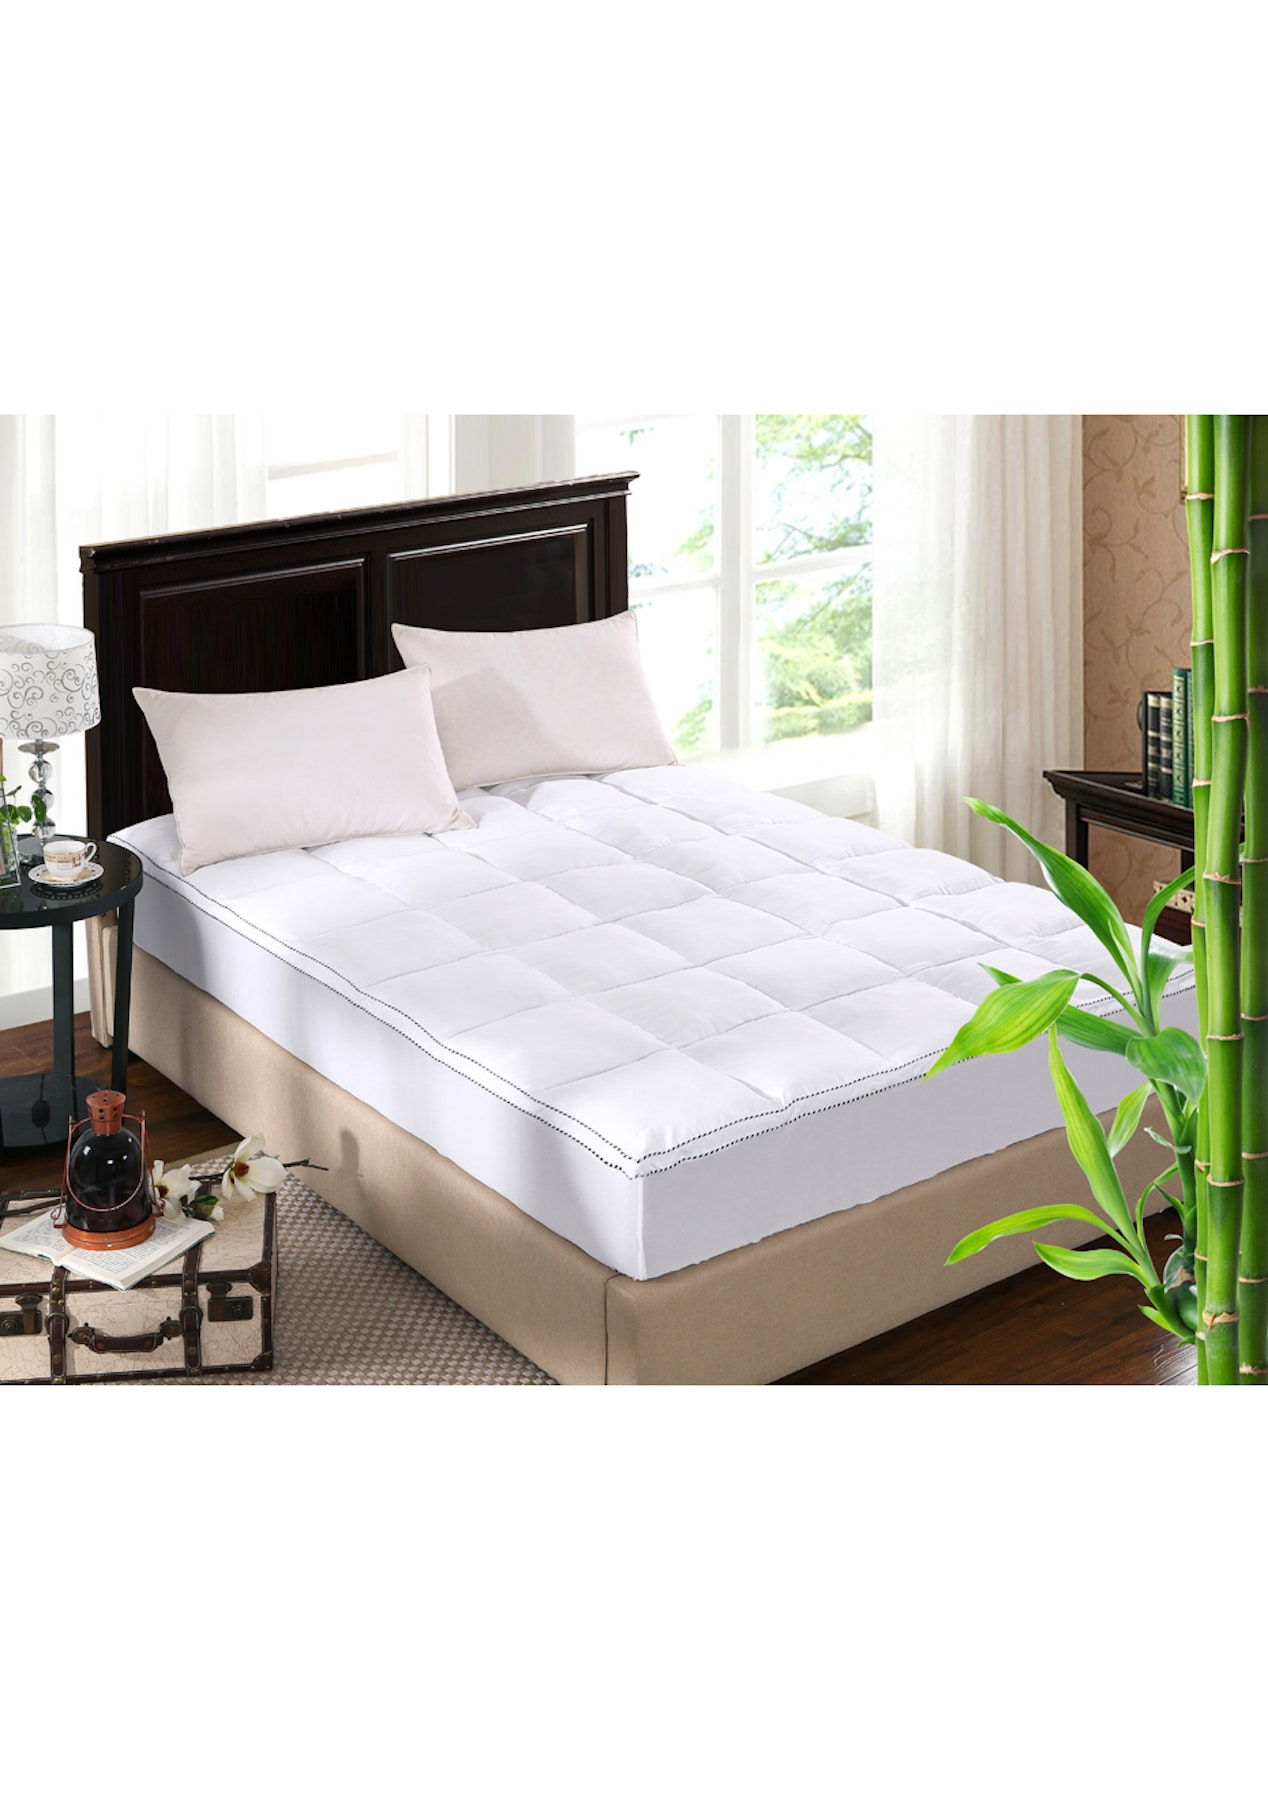 comforter shredded with firm comfort bamboo hotel memory original foam pillow gallery premium king